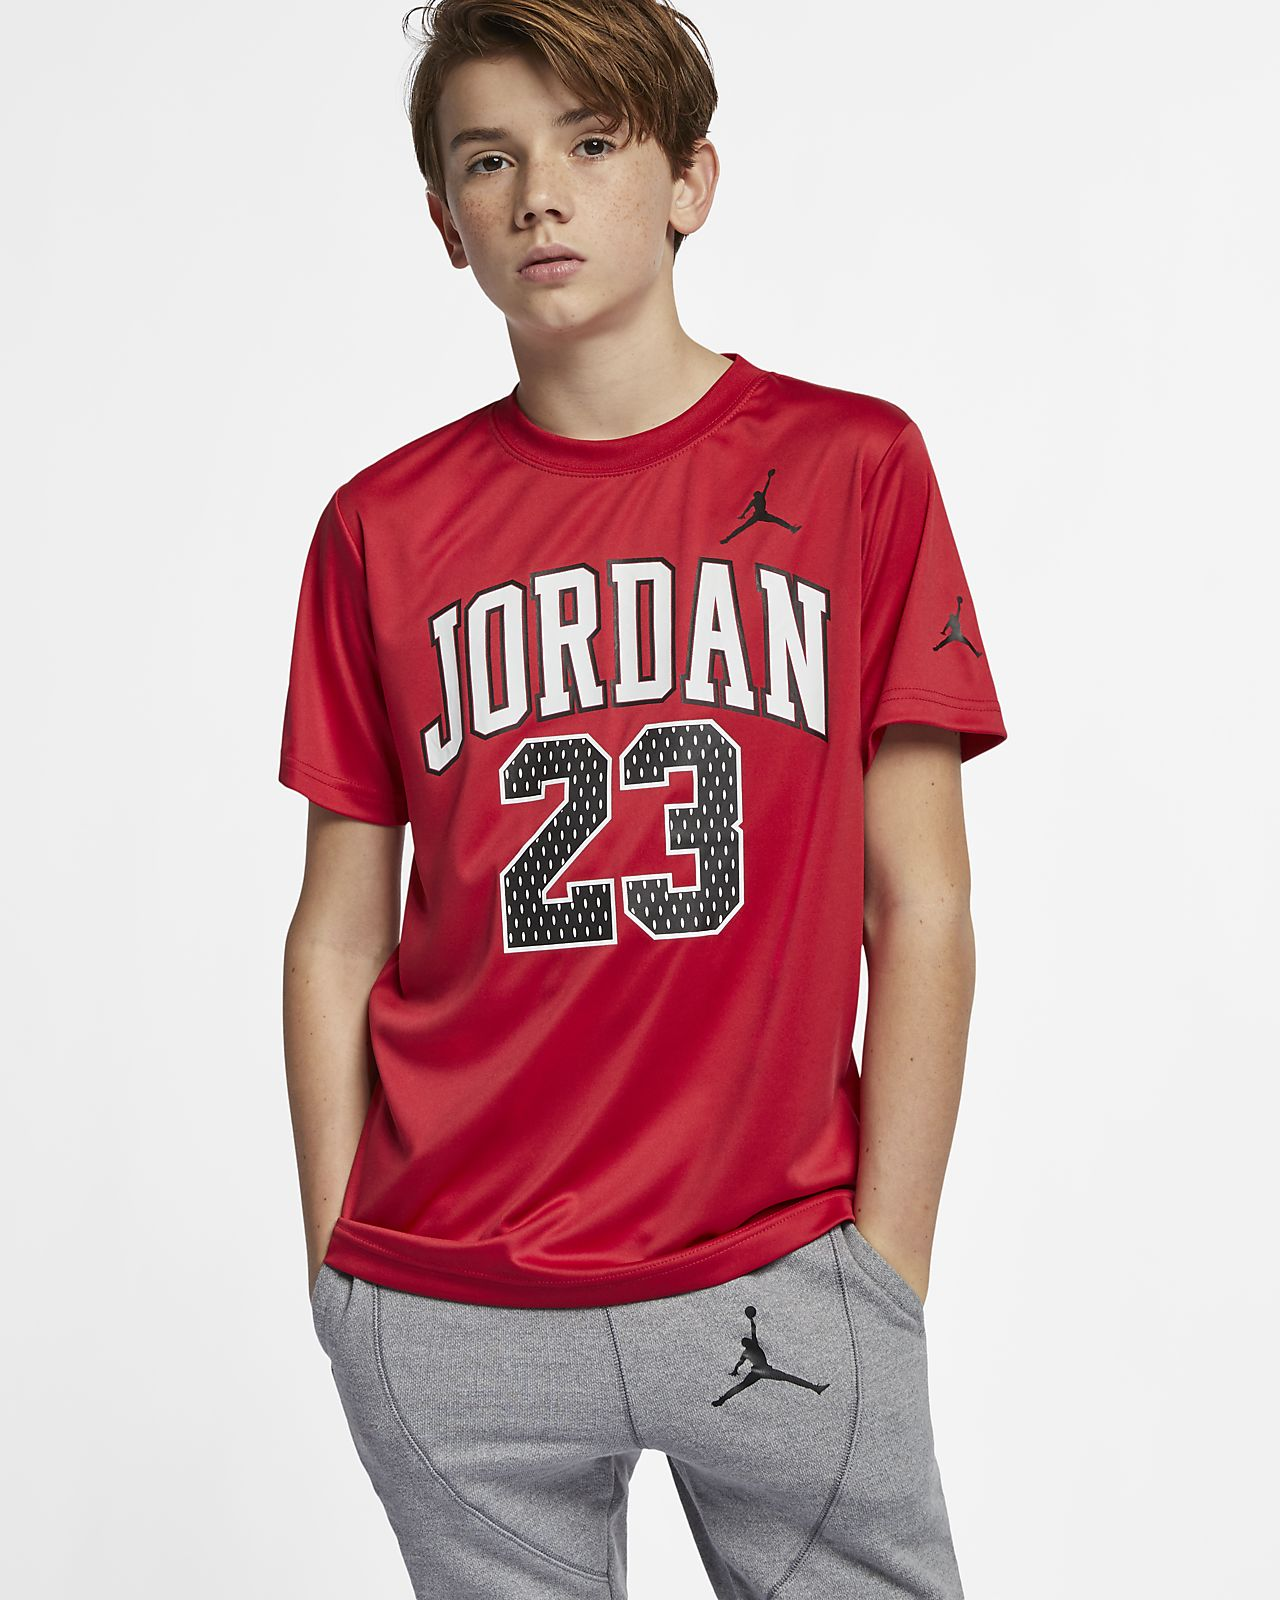 Jordan Dri-FIT 23 T-shirt met graphic voor kids